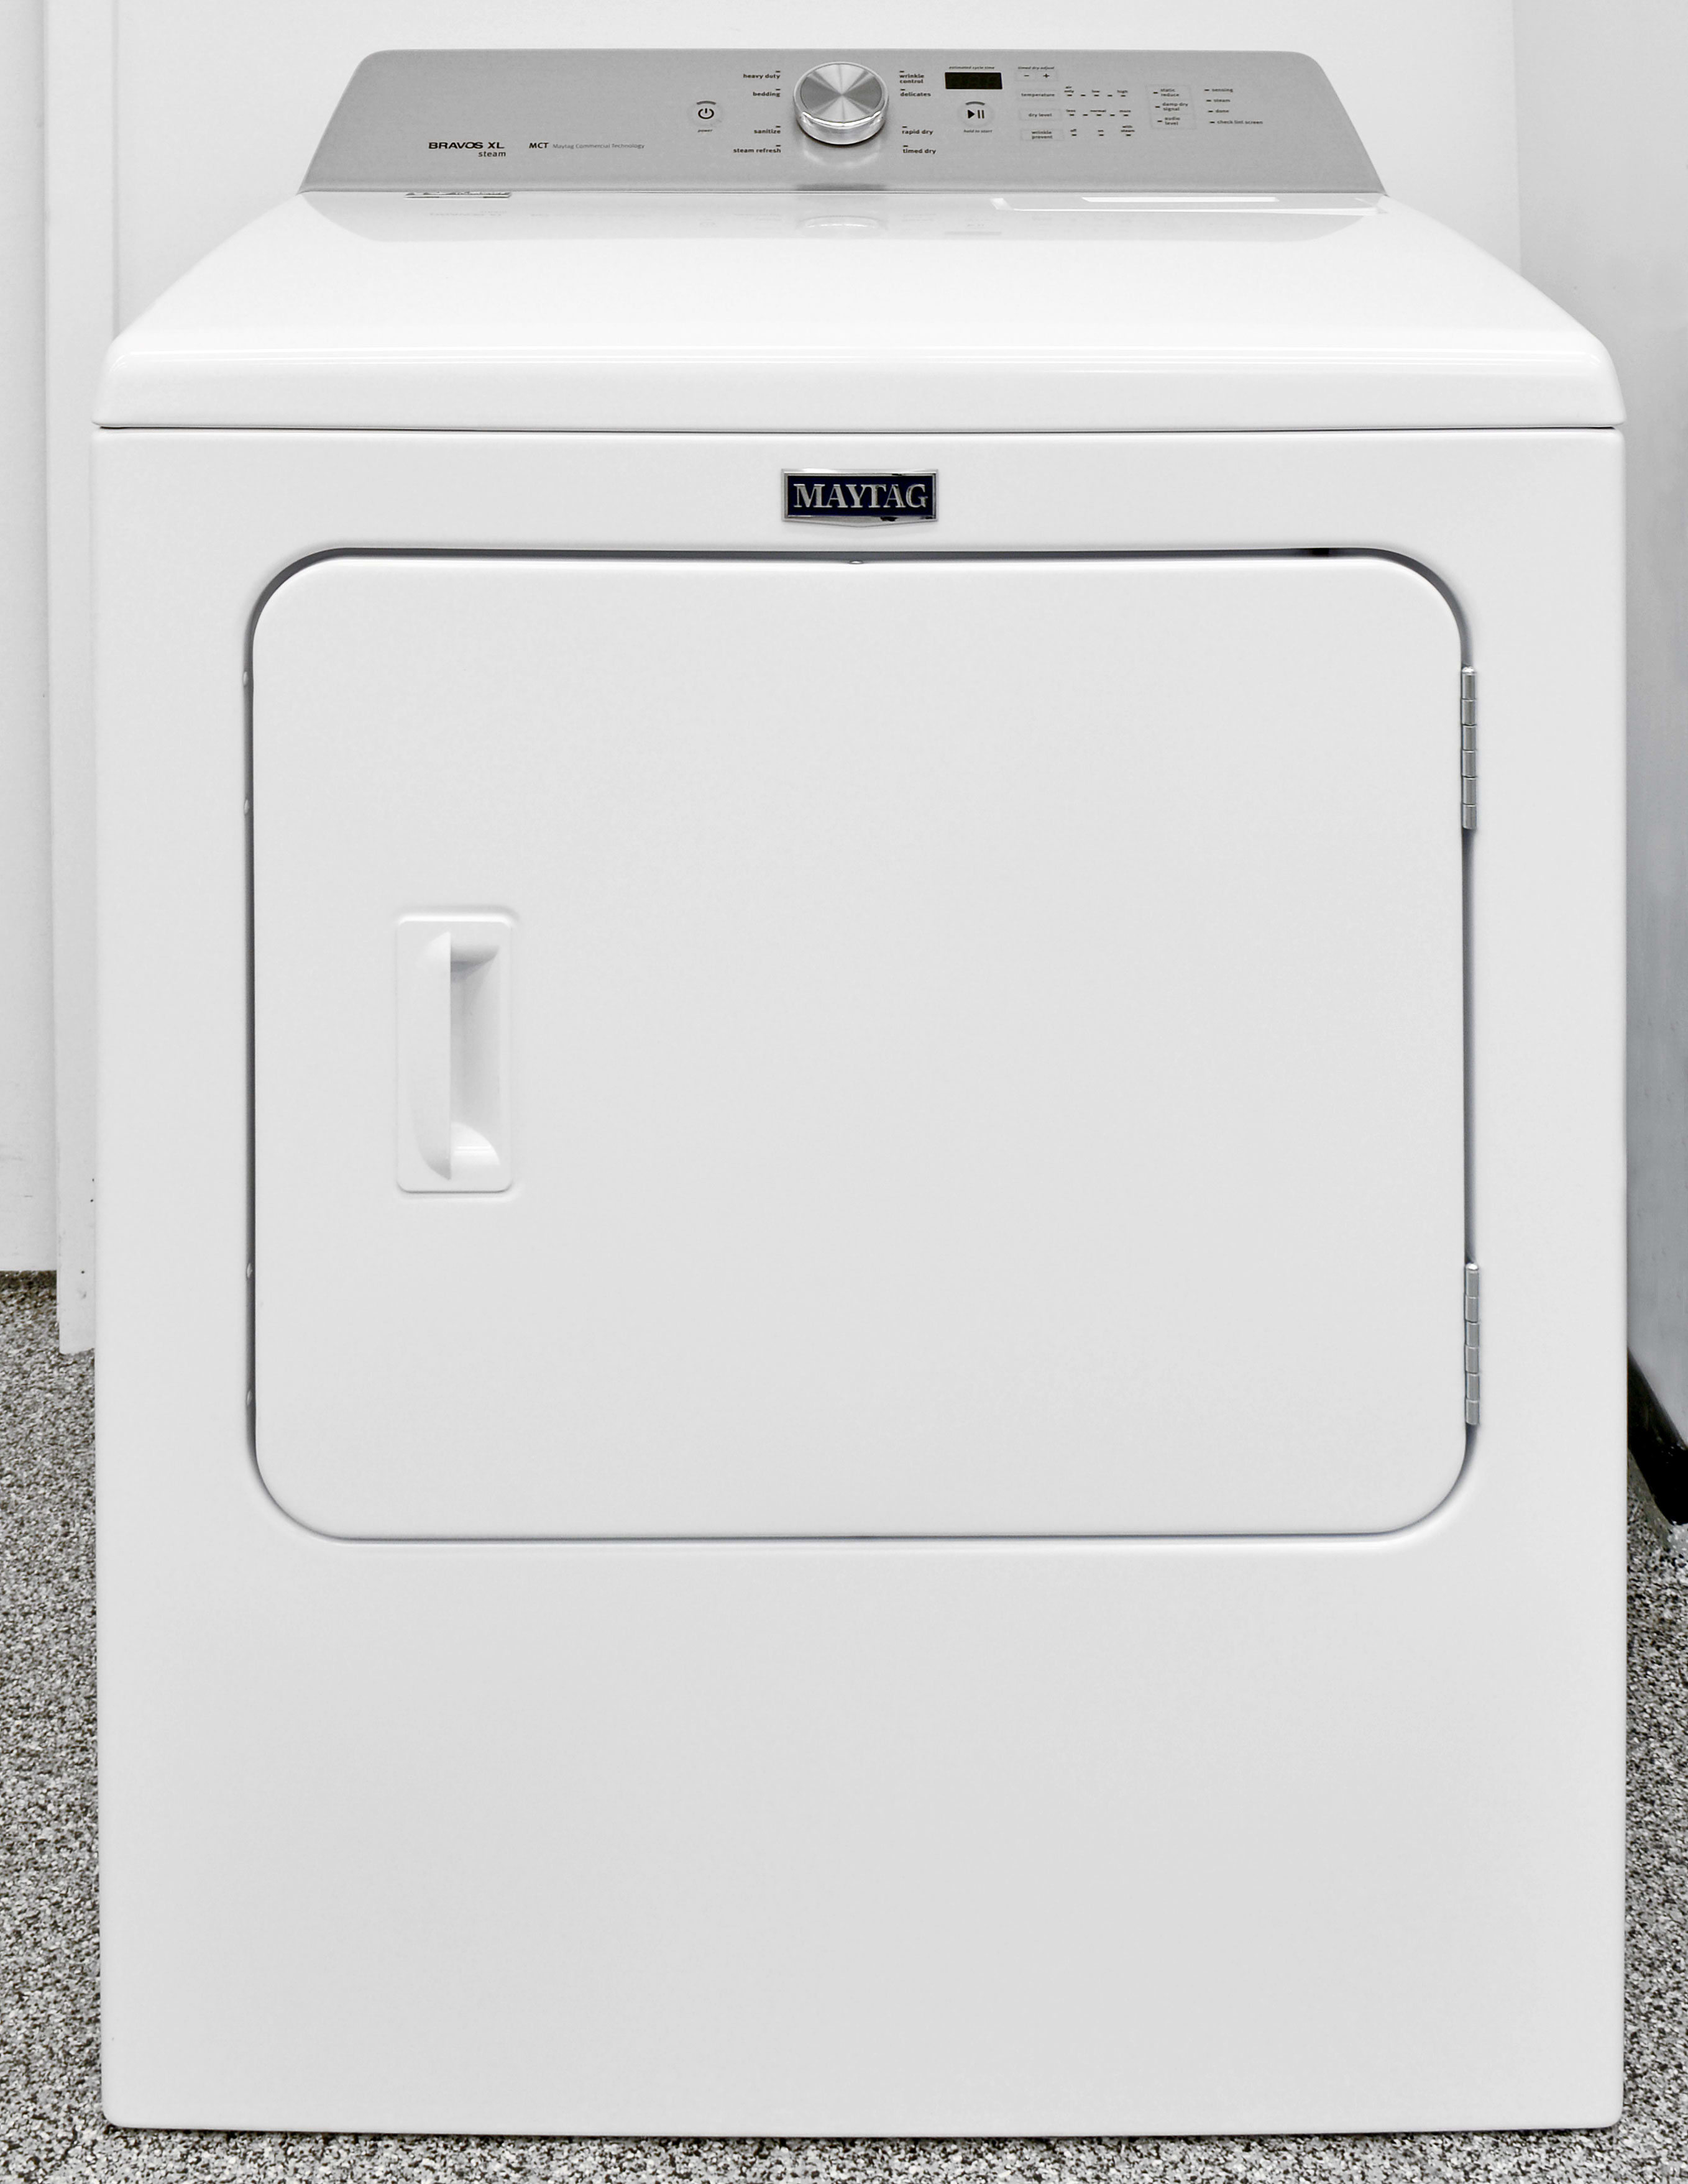 The Maytag Bravos MEDB755DW looks basic, but this dryer is a top-notch performer.